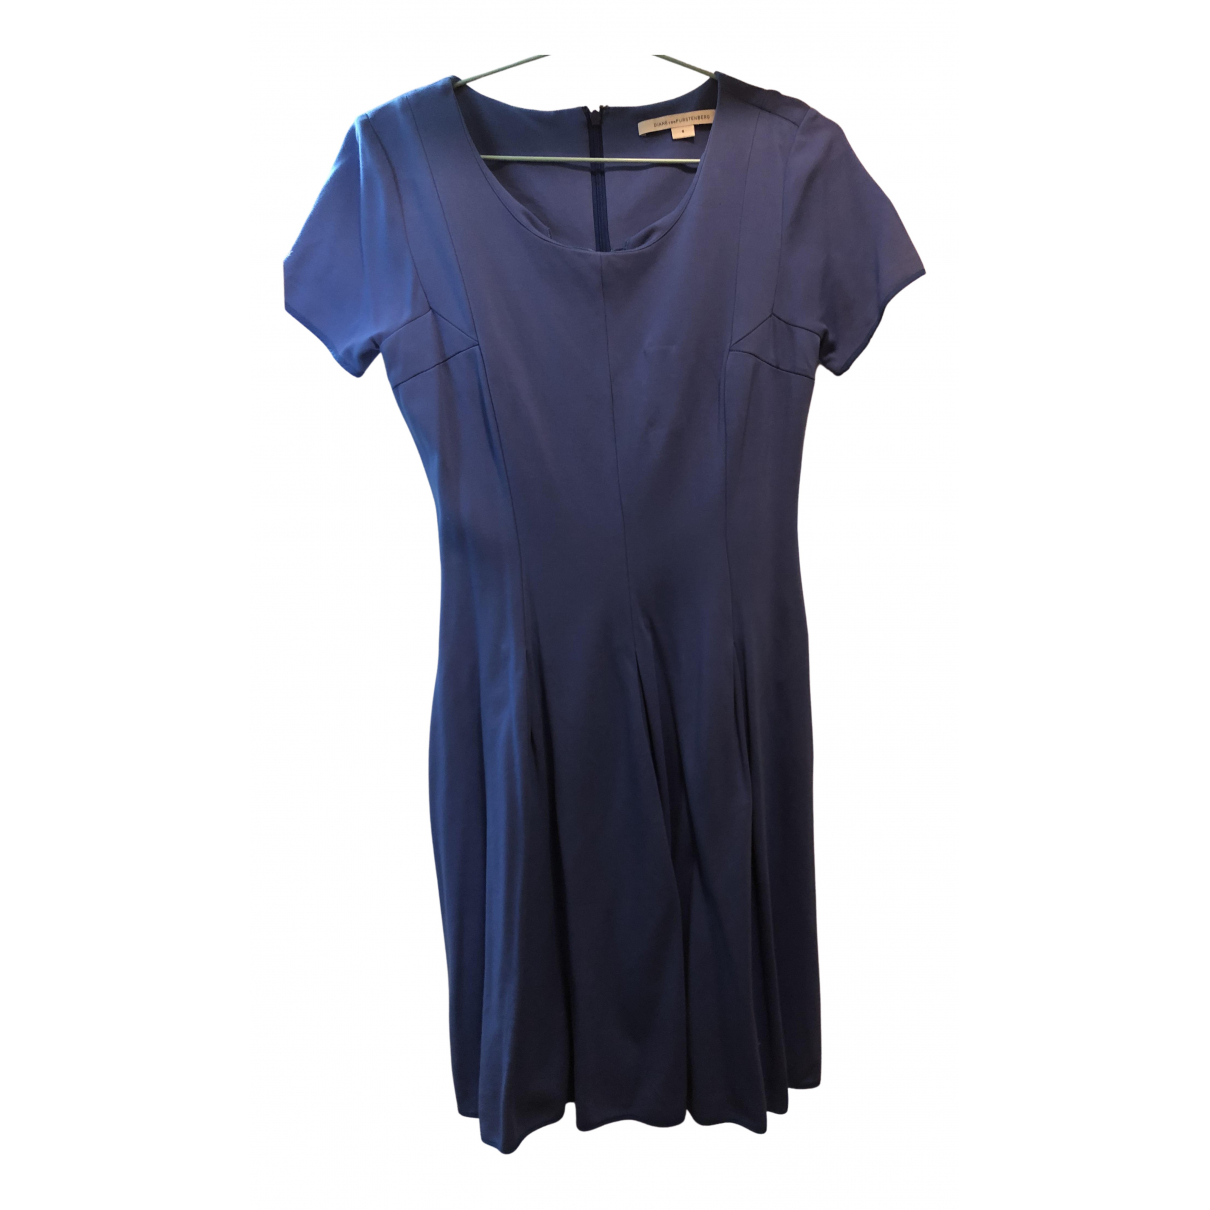 Diane Von Furstenberg N Blue dress for Women 6 US